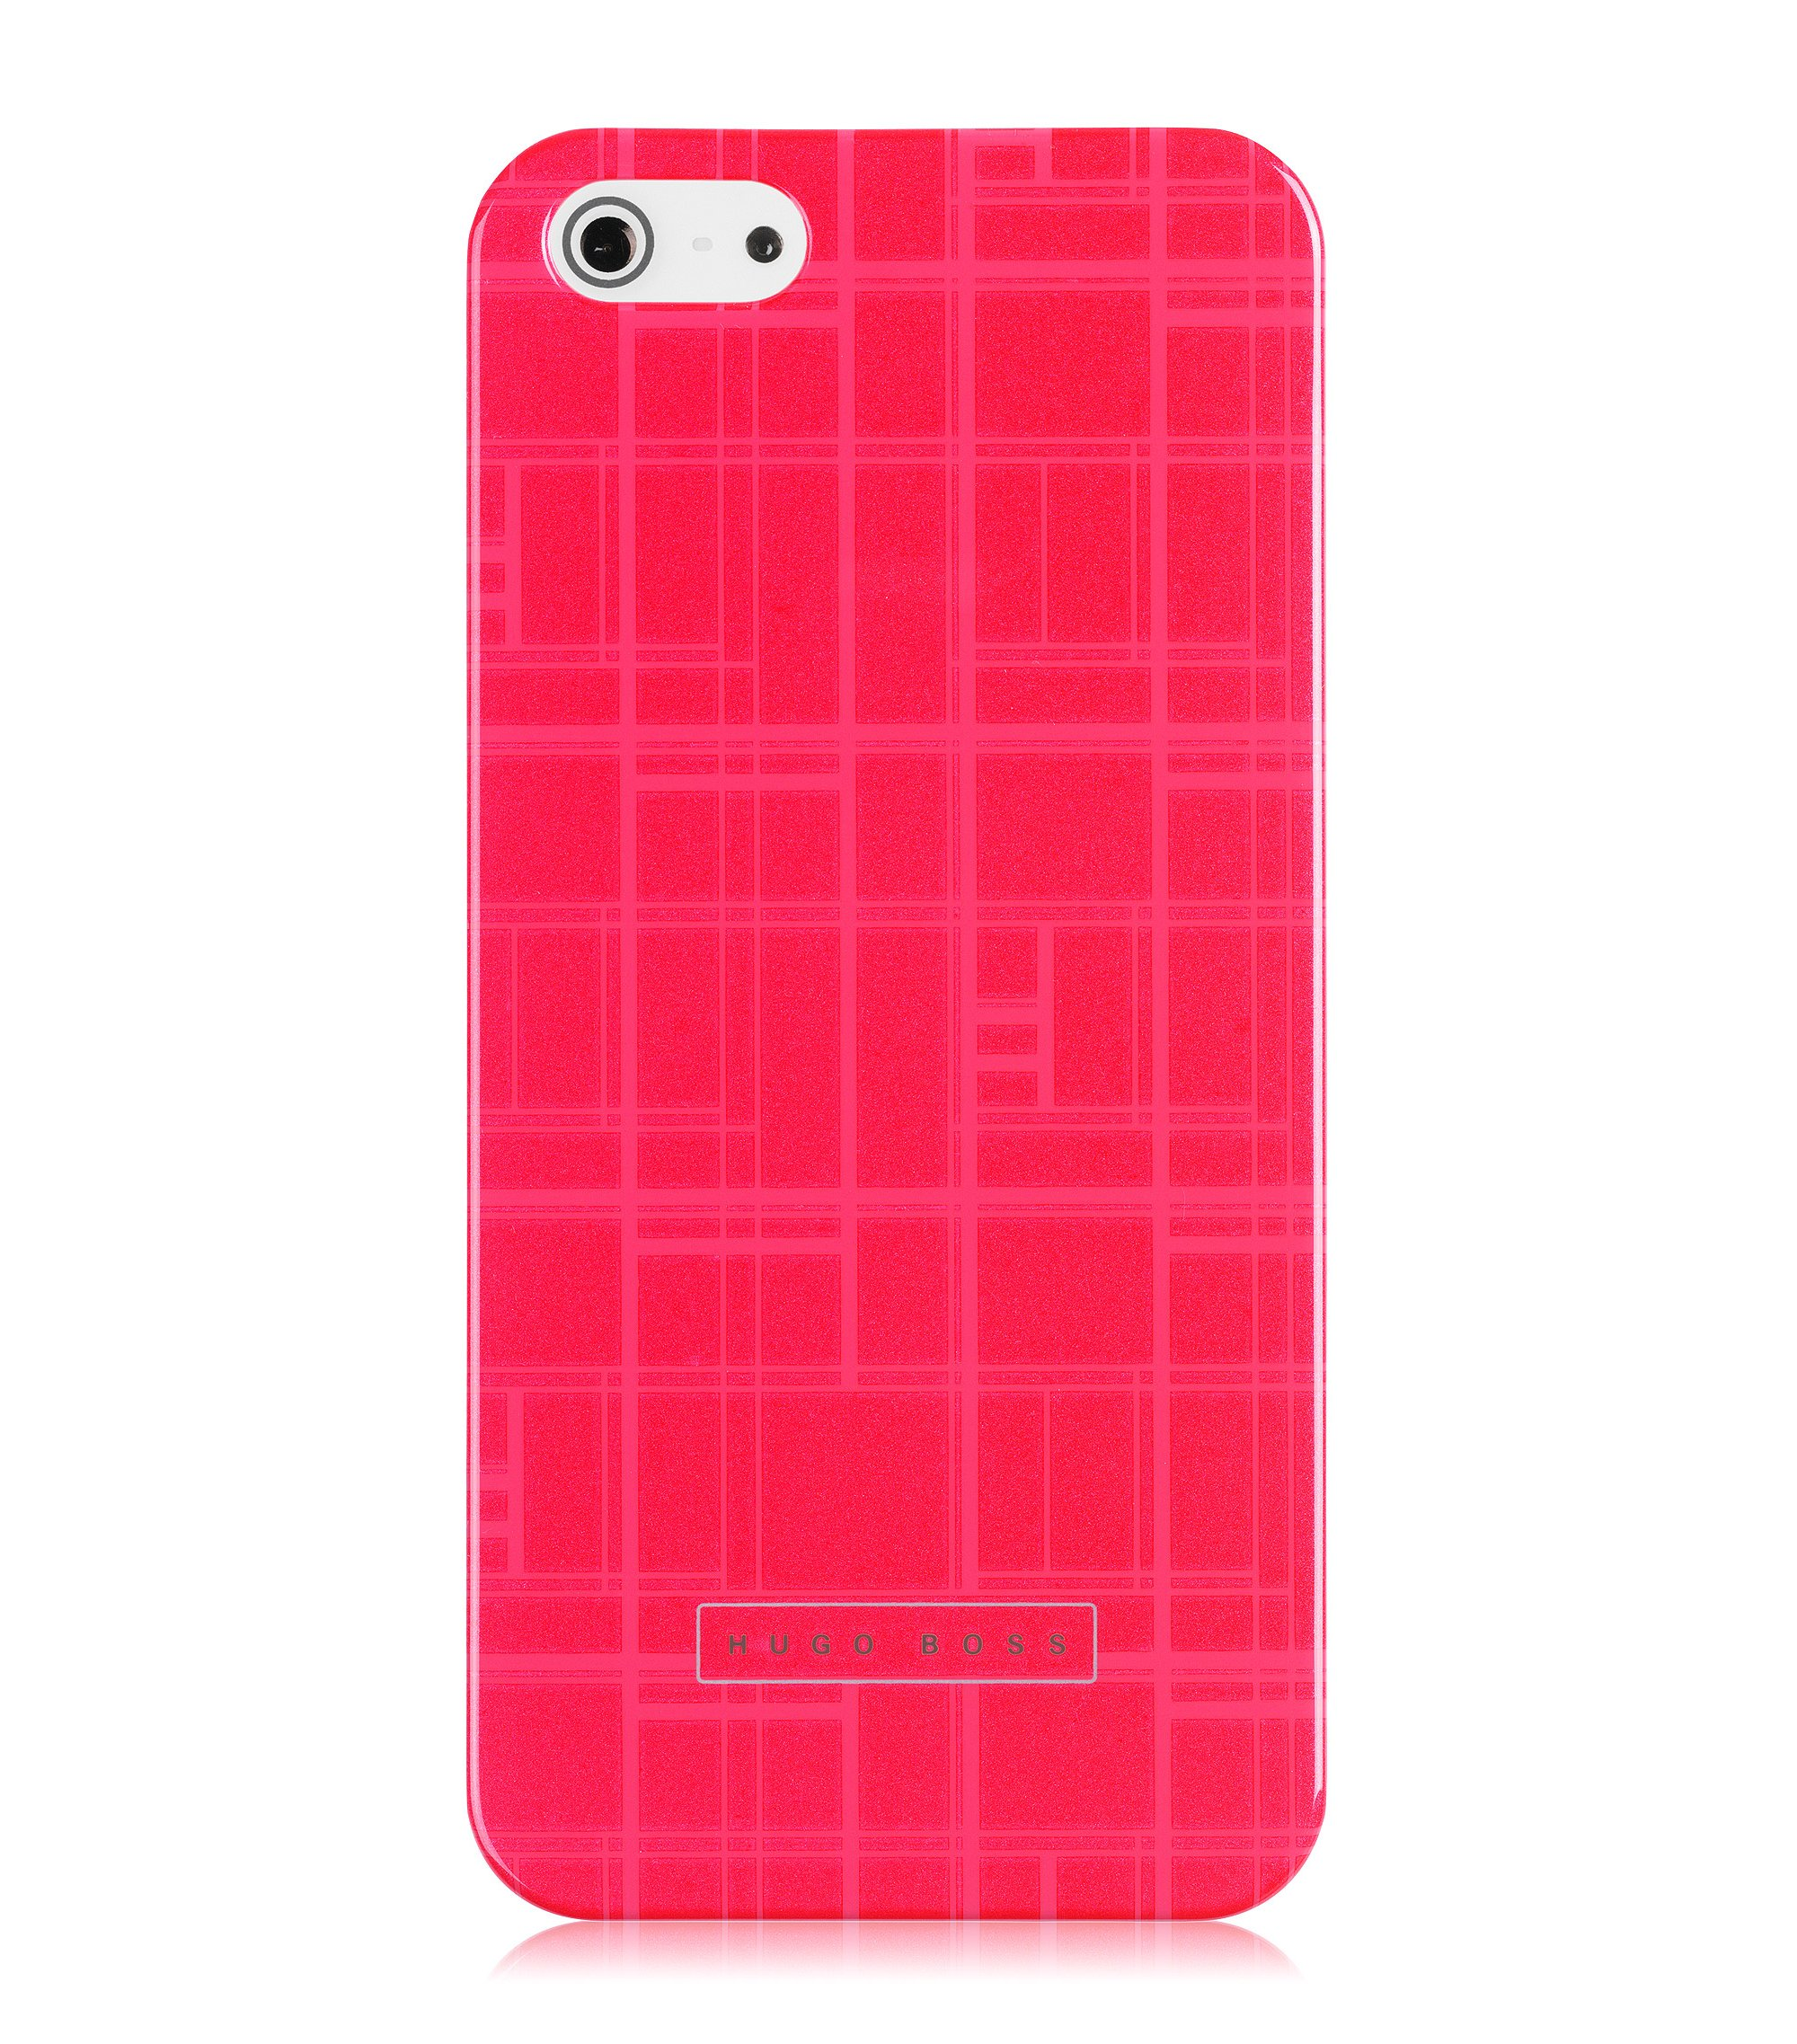 Hardcover 'Catwalk IP5 Pink' voor iPhone 5/5S, Pink